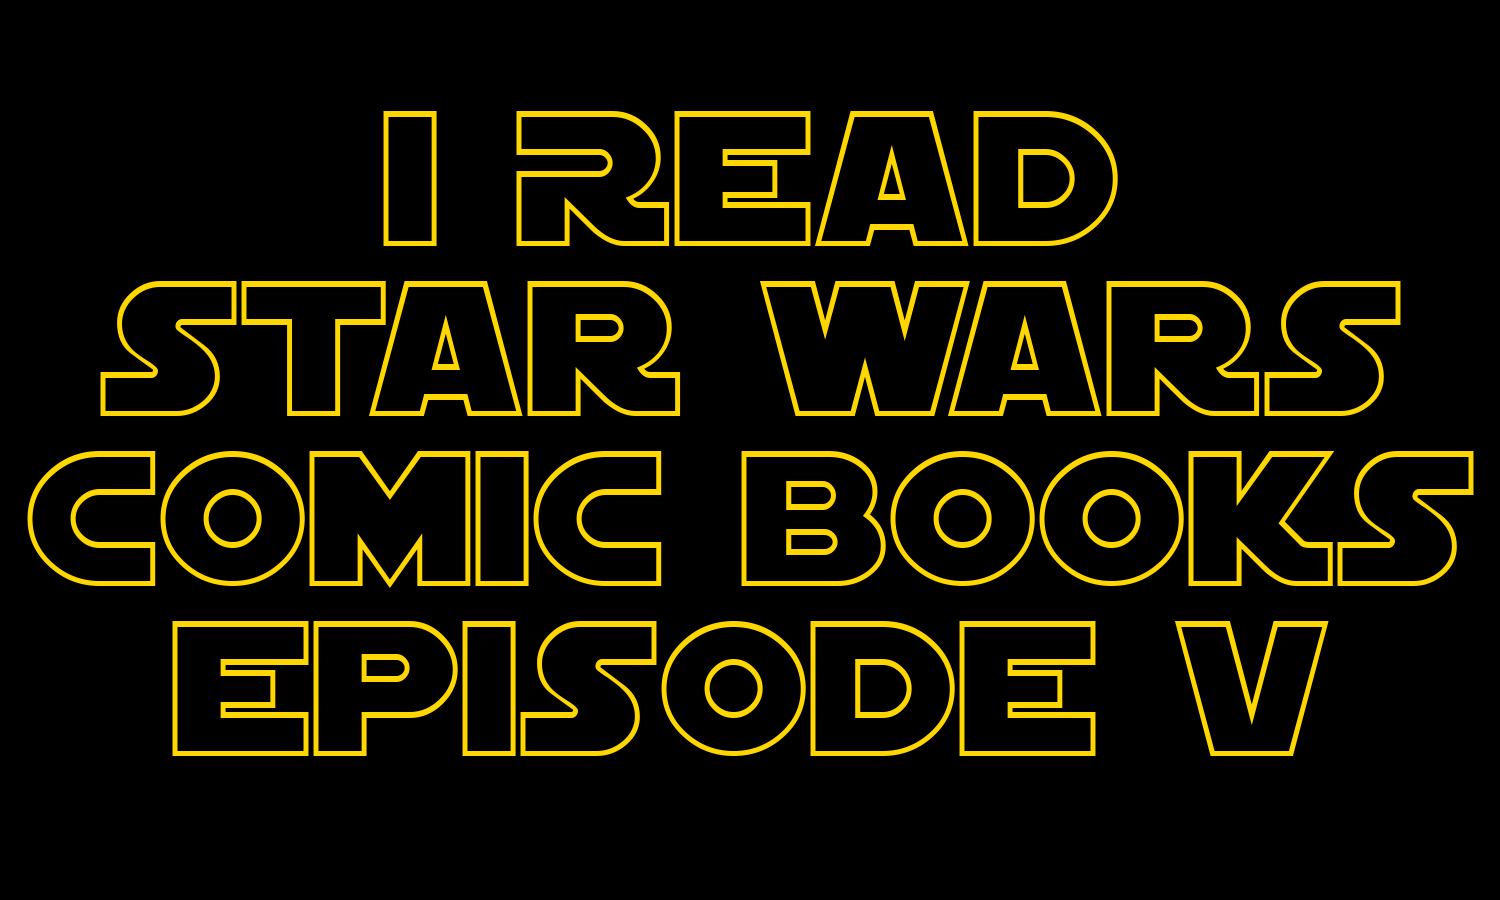 I Read Star Wars Comic Books Episode V | Age of Rebellion and other miniseries